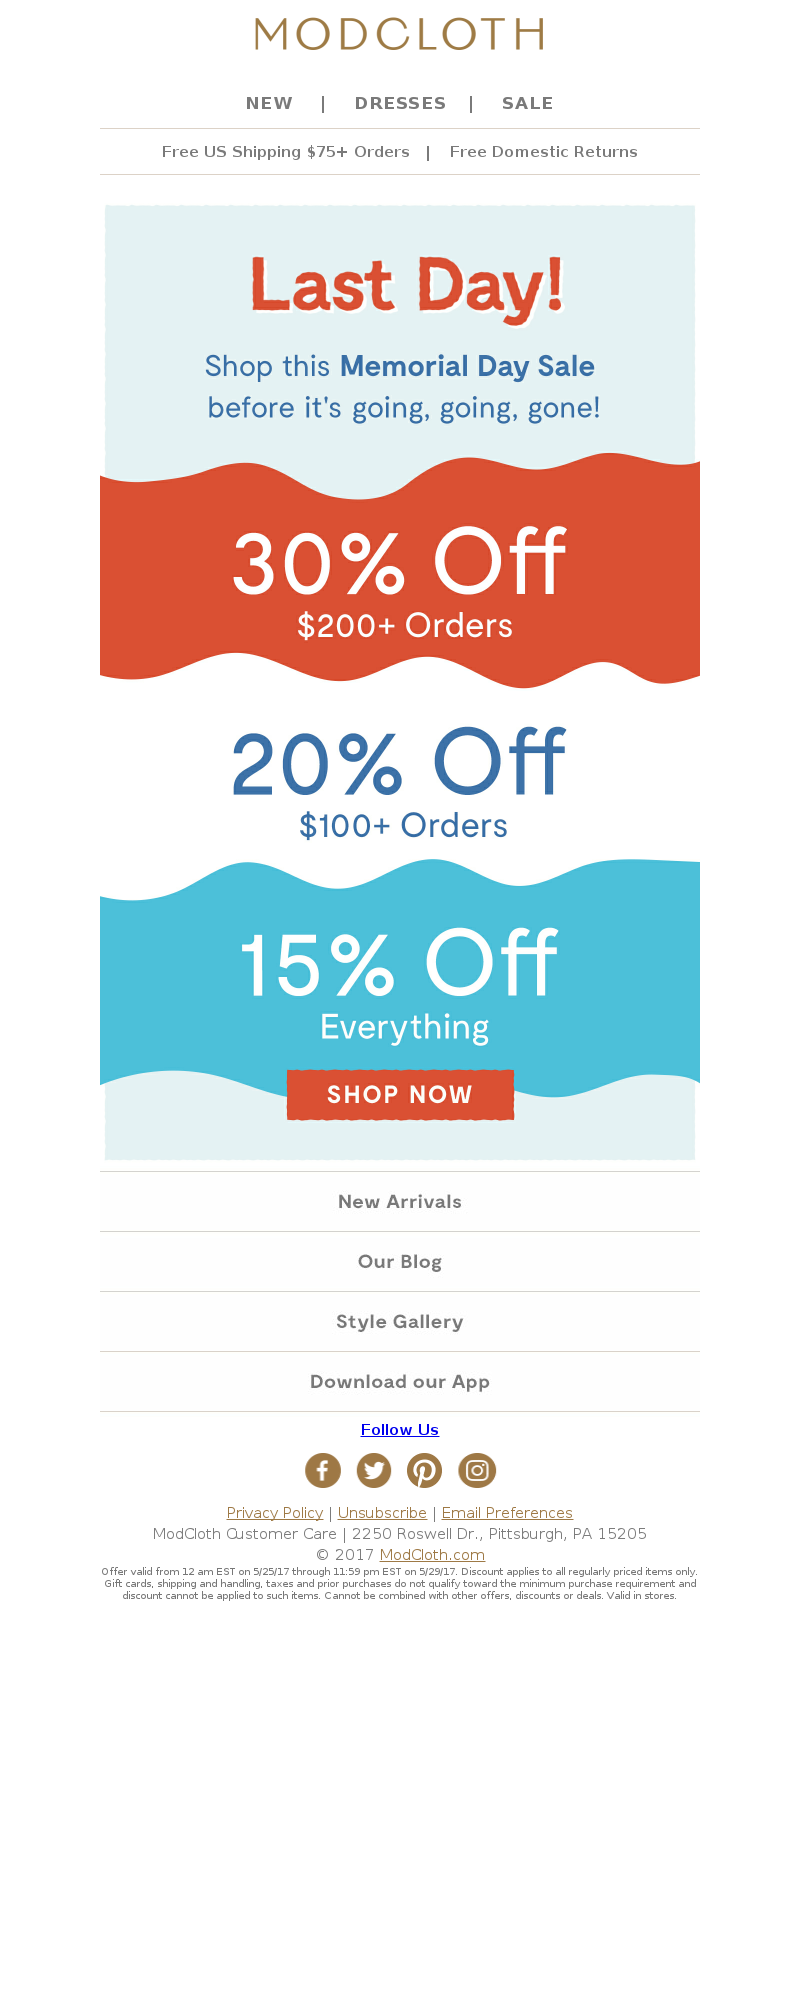 ModCloth - Going, going, GONE. This sale ends today!